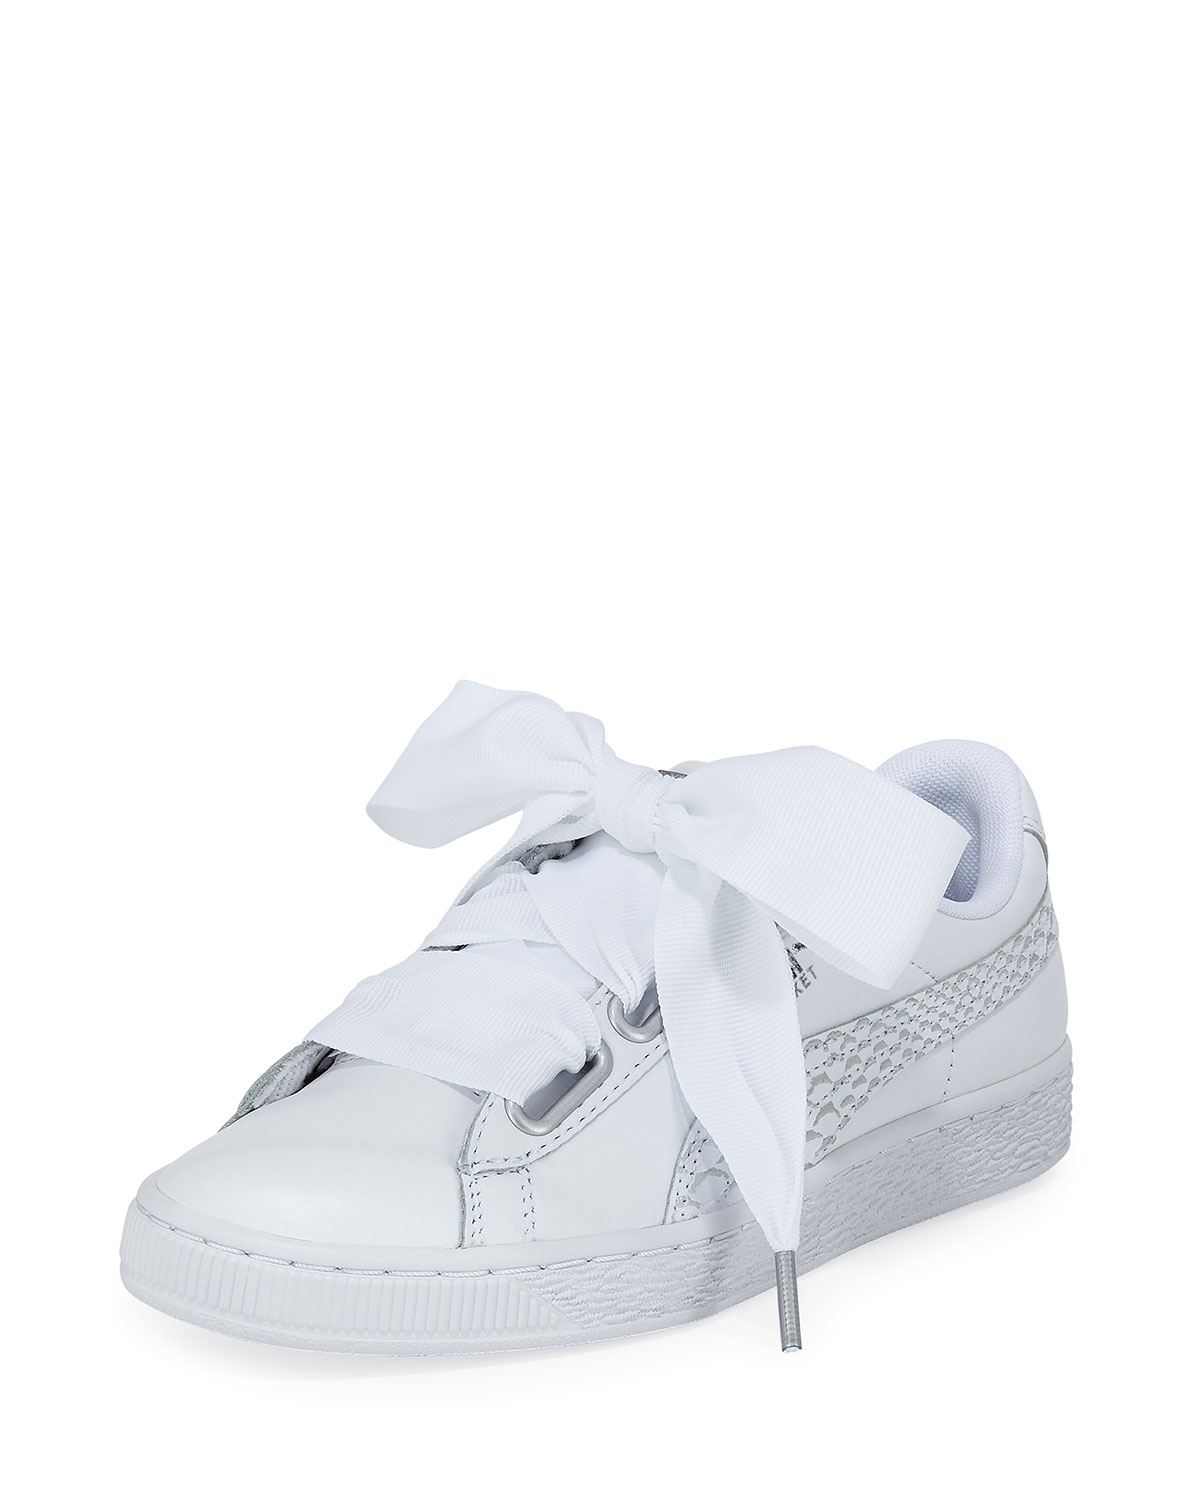 f1cf80658ef Puma Basket Heart Oceanaire Ribbon-Laced Sneakers